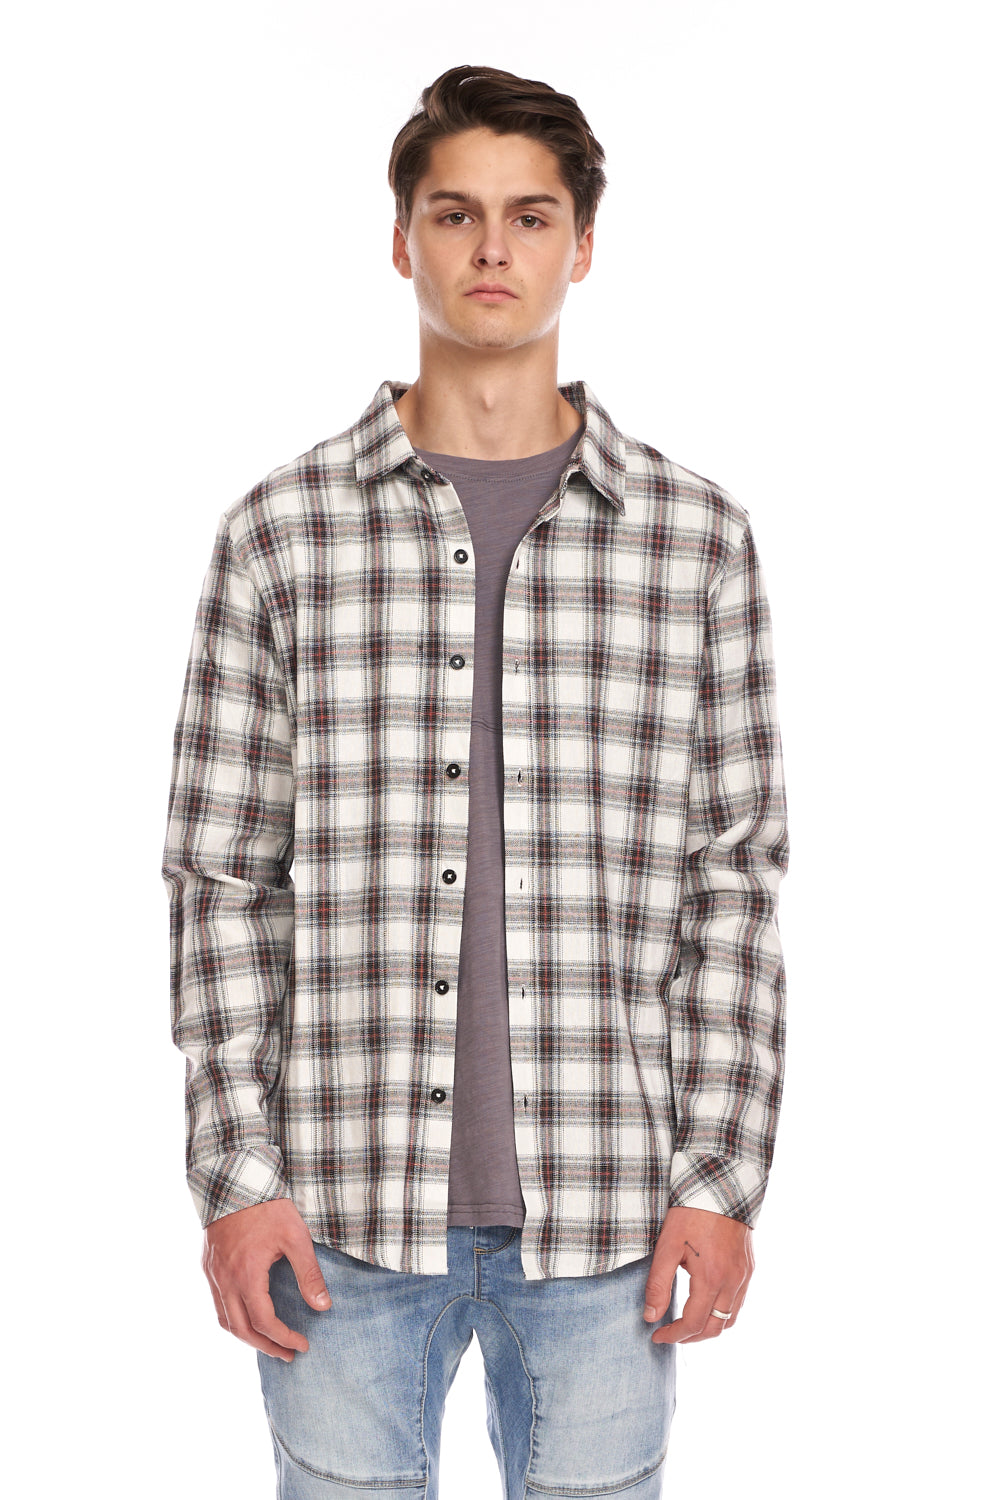 Proper Plaid Button Up